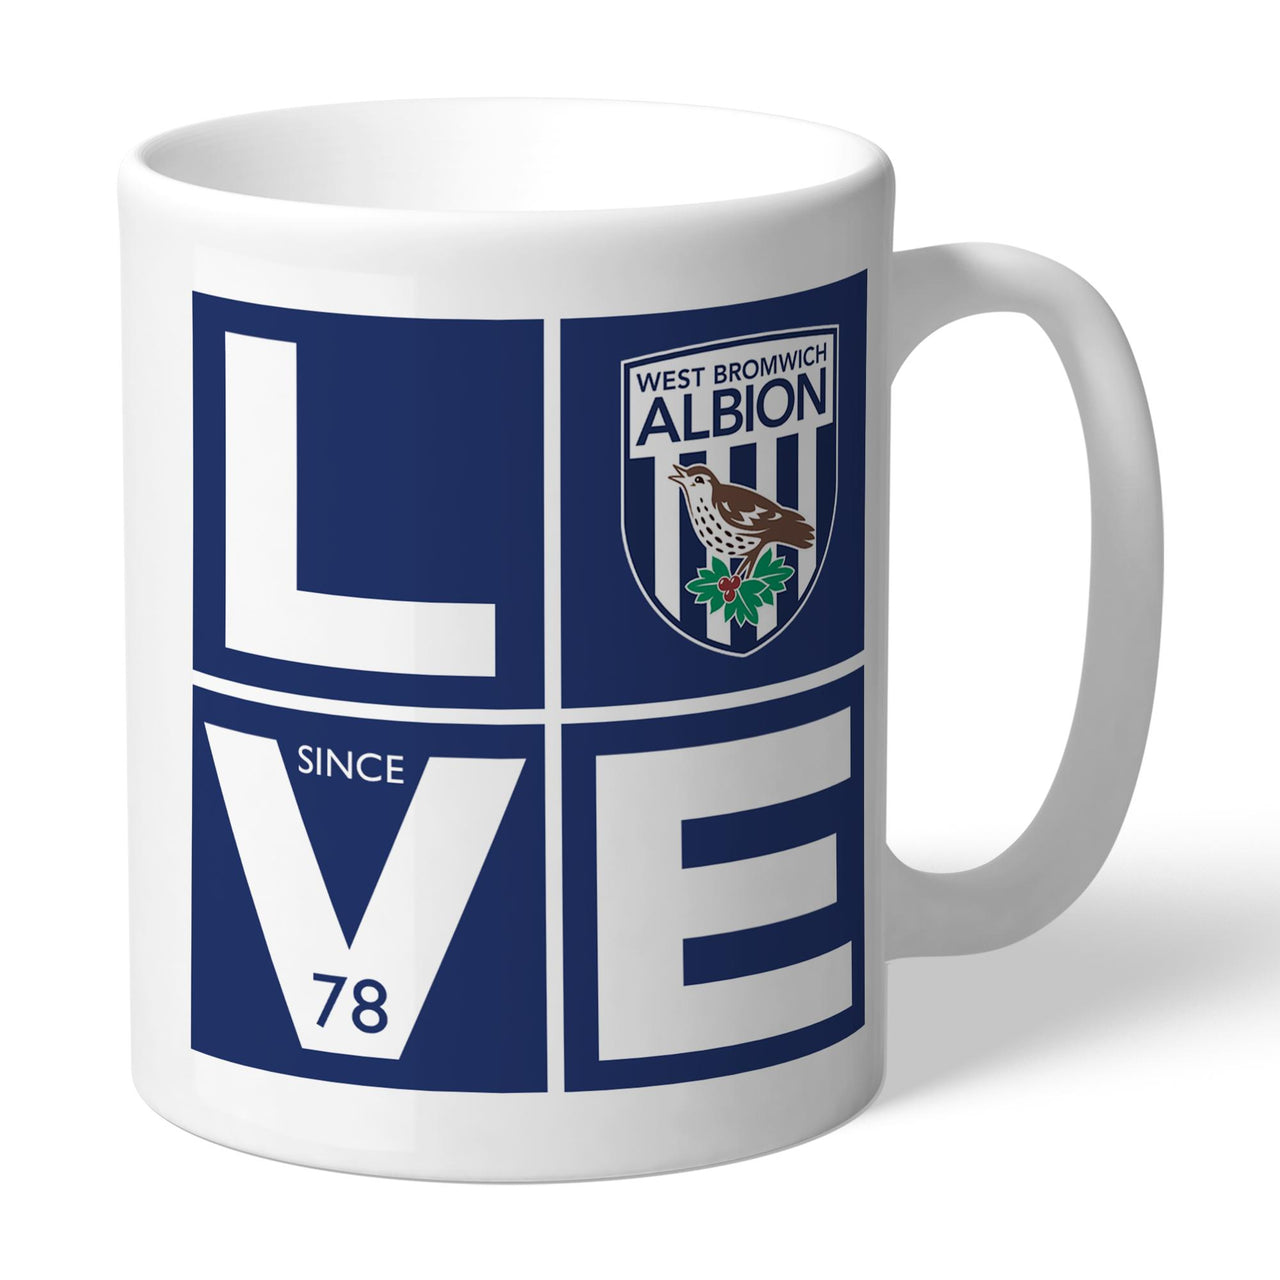 West Bromwich Albion Love Mugs, Gifts